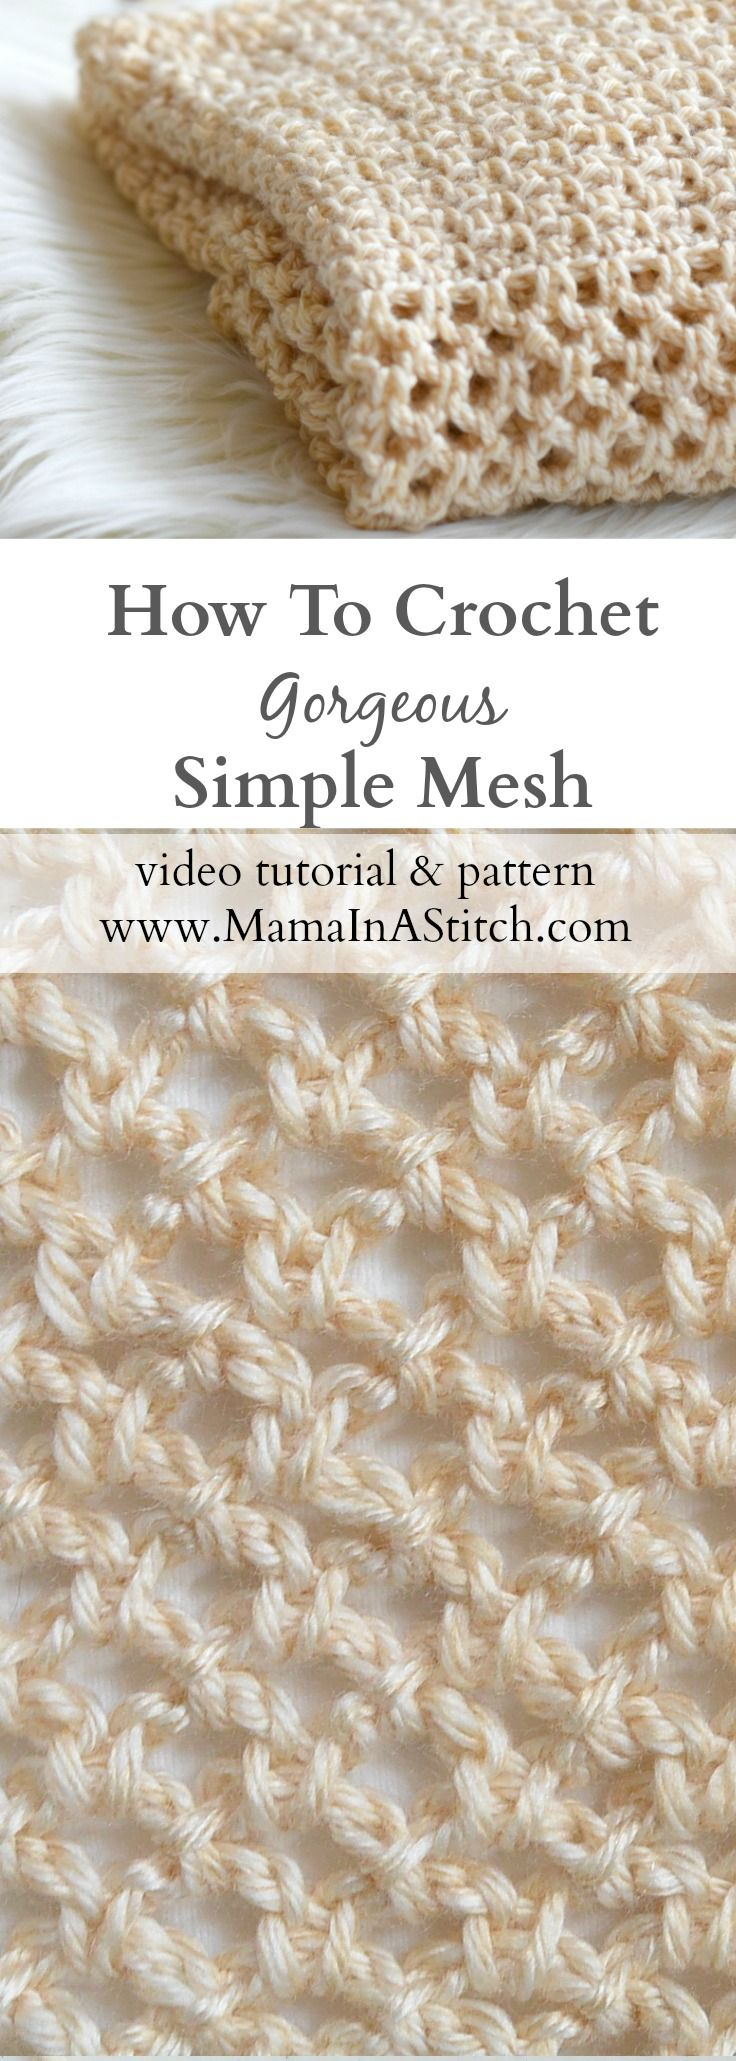 How To Crochet An Easy Mesh Stitch via @MamaInAStitch This is a modern mesh stitch works up beautifully and is so easy to make! Free pattern and tutorial.